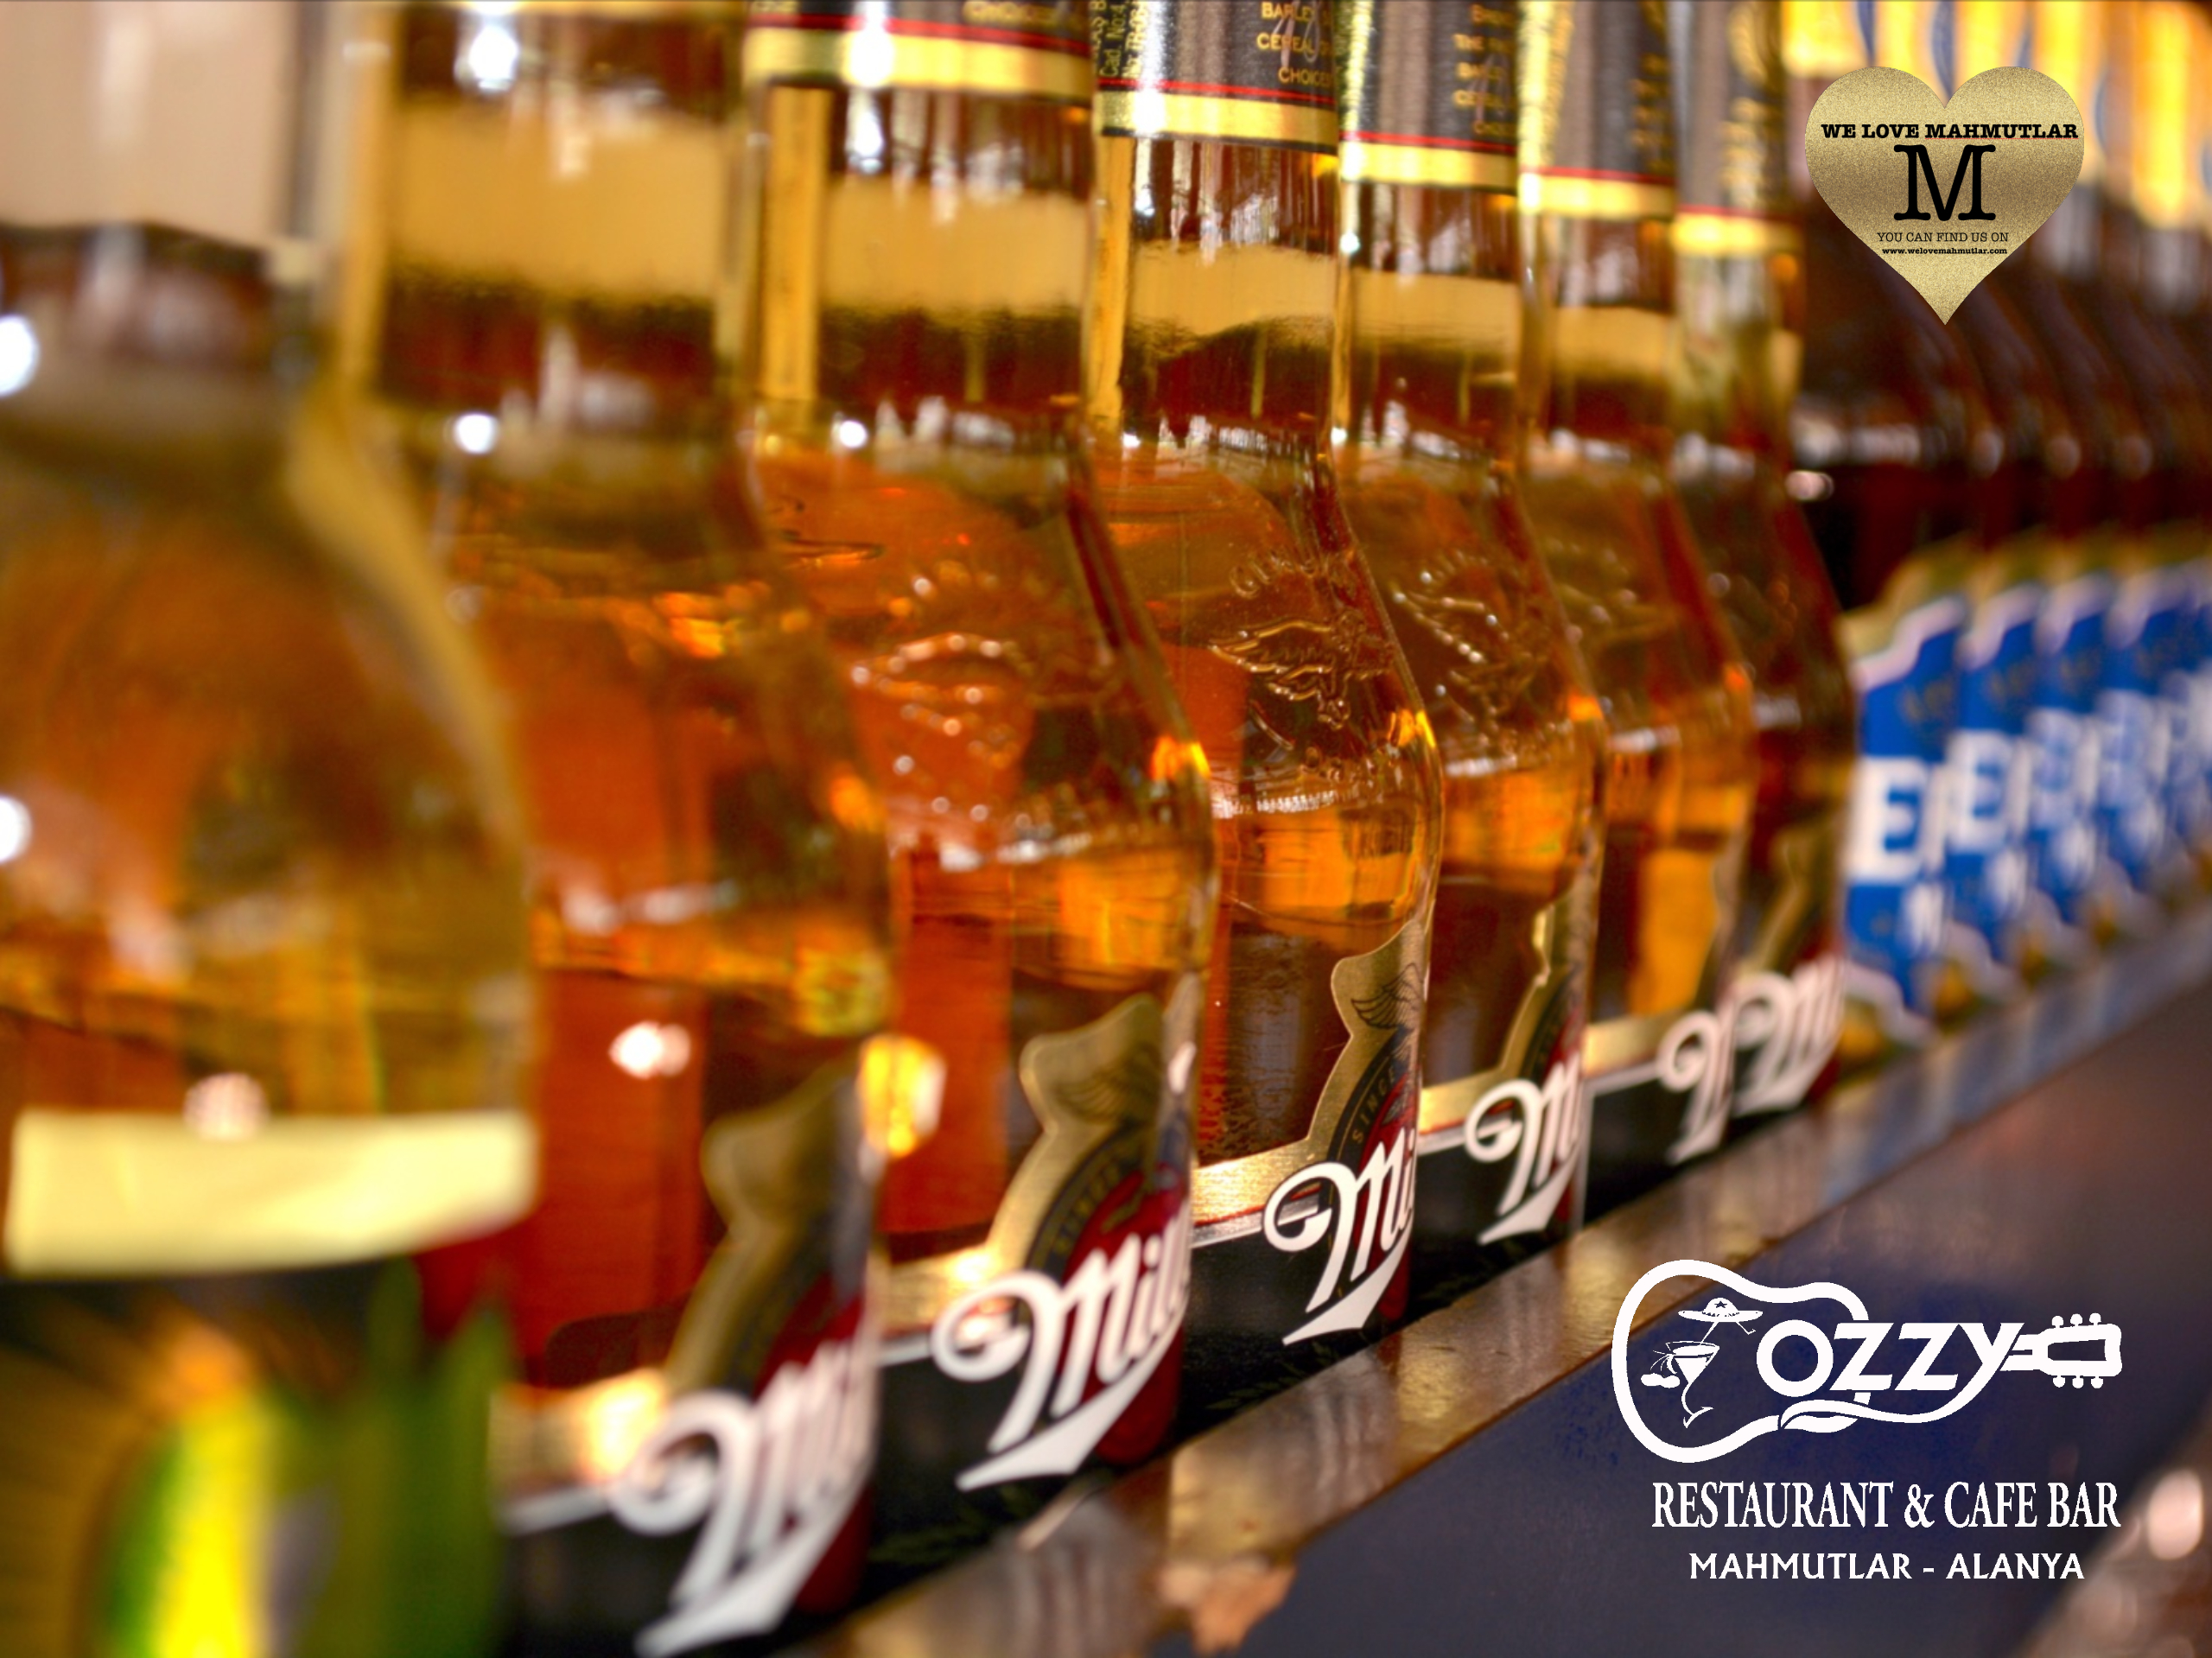 OZZYS RESTAURANT AND BAR IN MAHMUTLAR - BEST RESTAURANTS - WE LOVE MAHMUTLAR